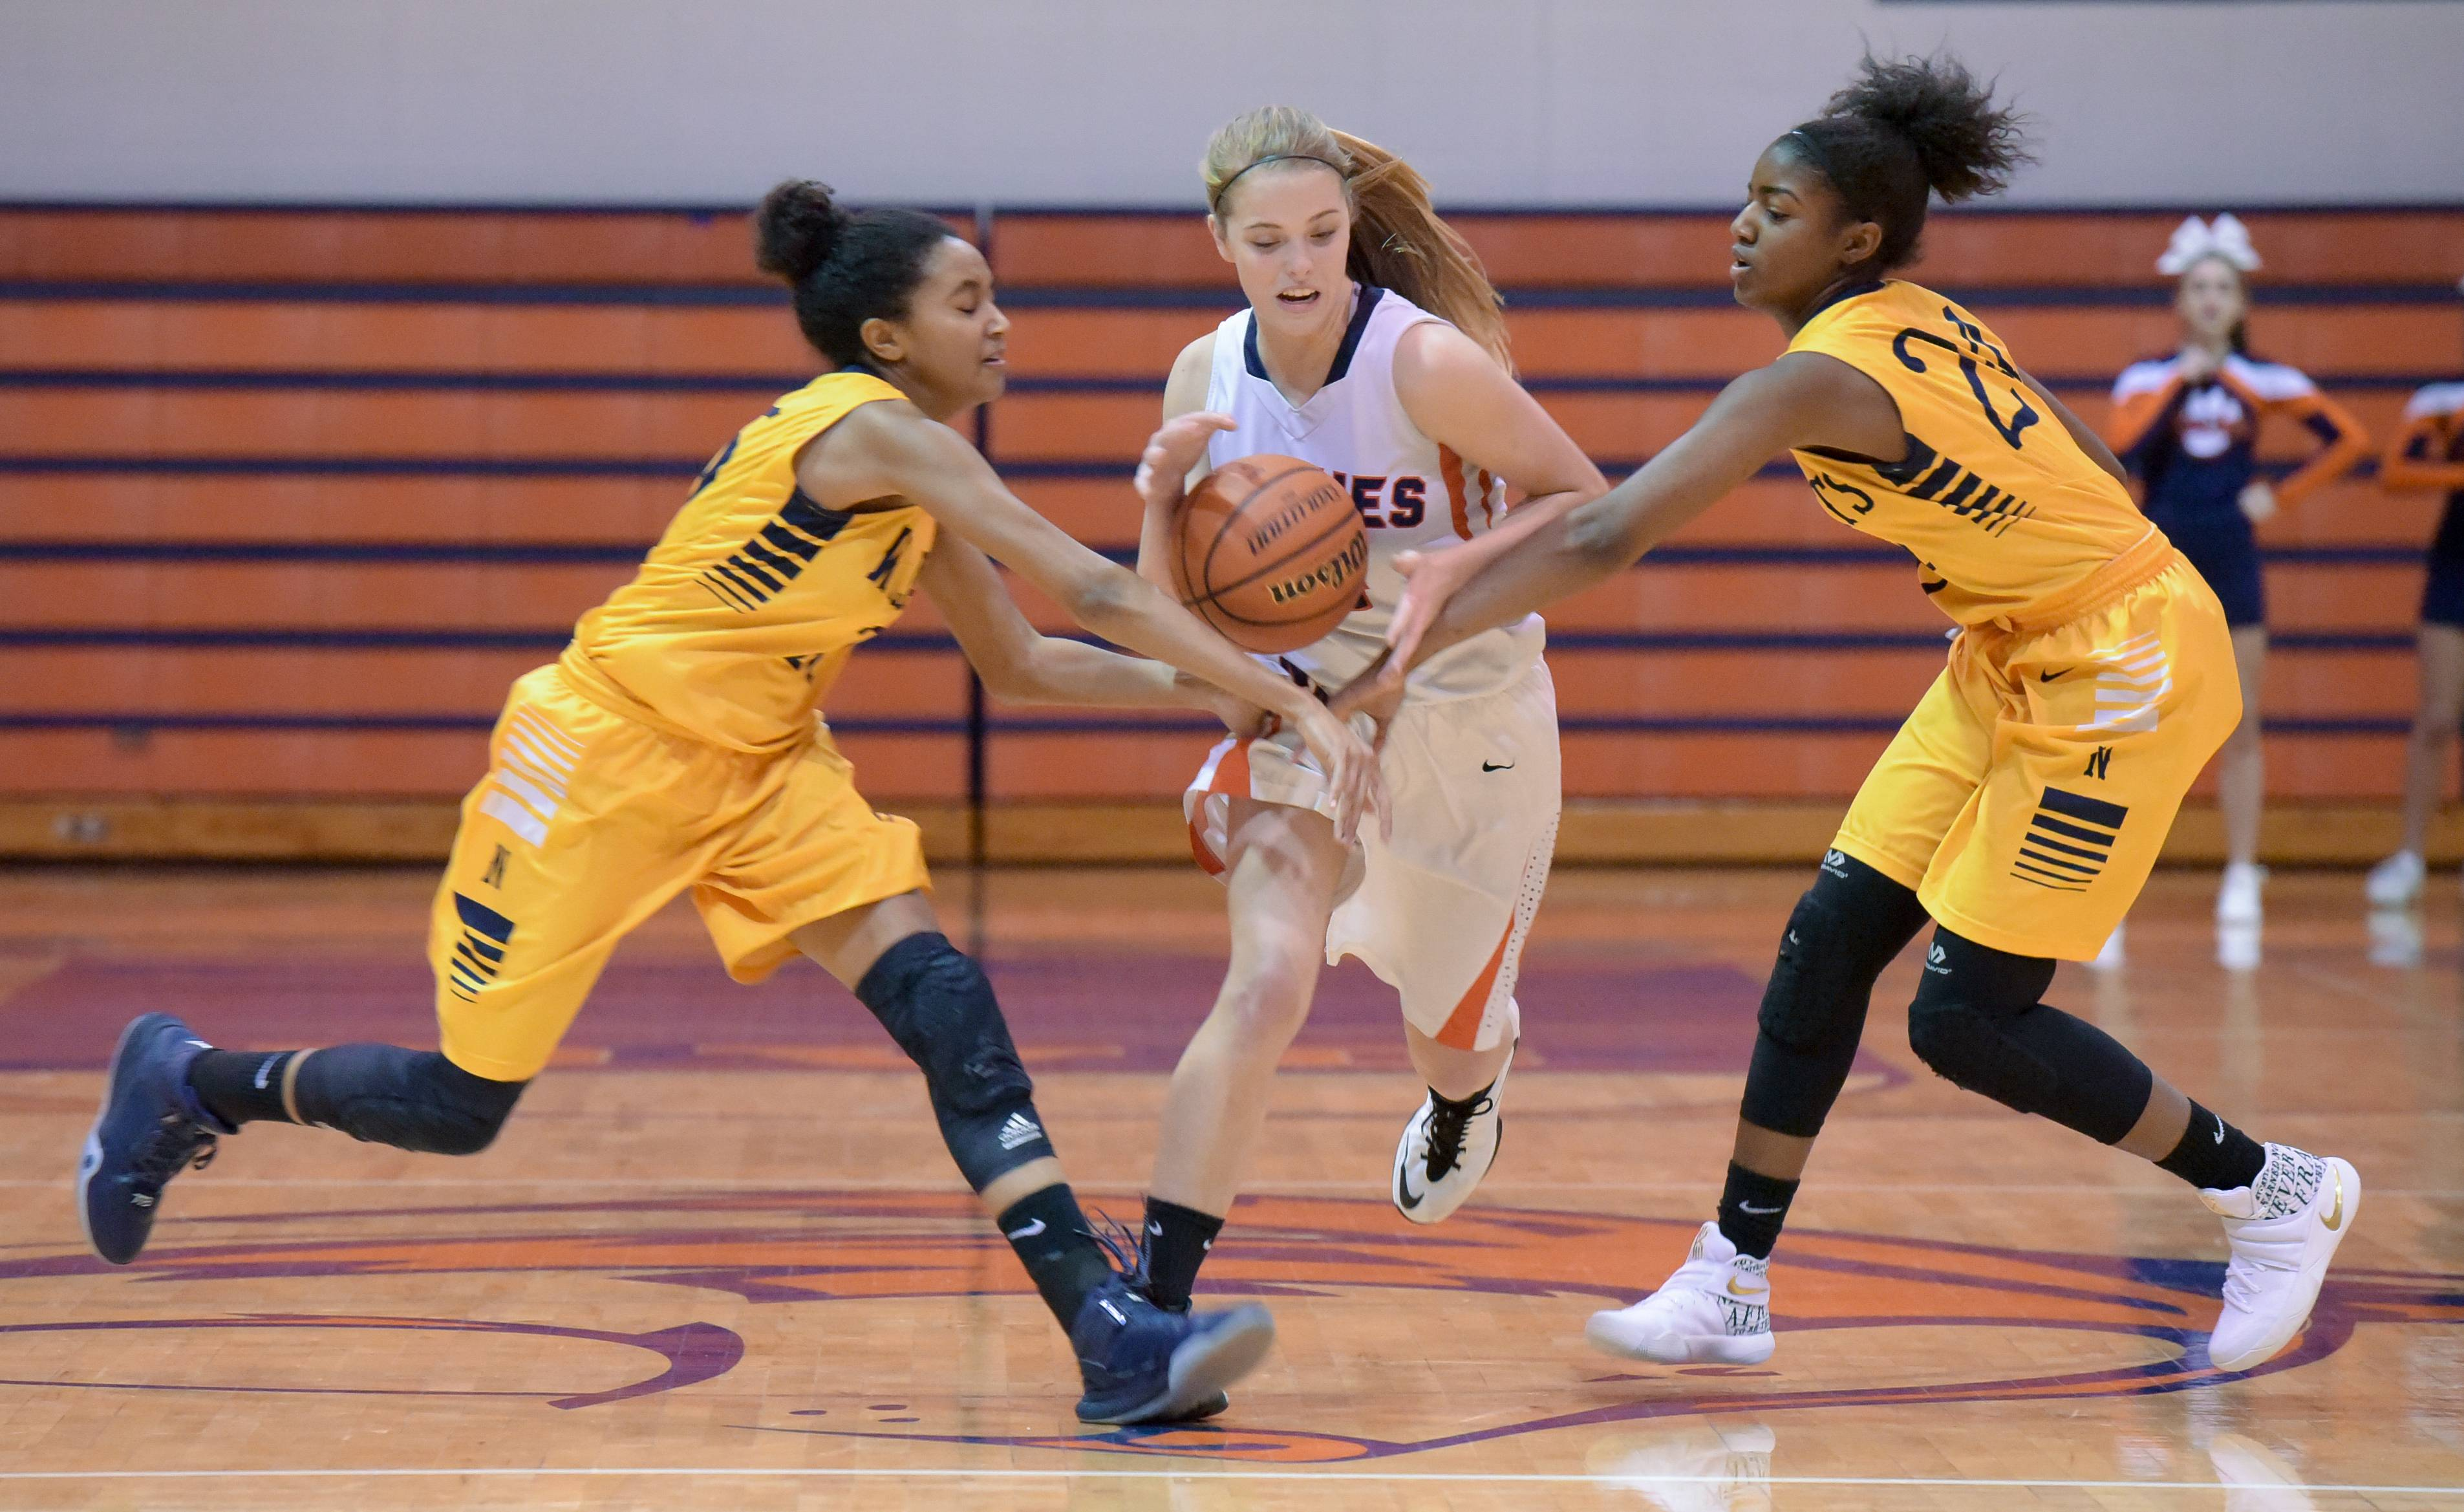 Naperville North's Lauren Platou pushes through Neuqua Valley's Gabby Thomas and Jasmine Walker during girls varsity basketball Wednesday at Naperville North.